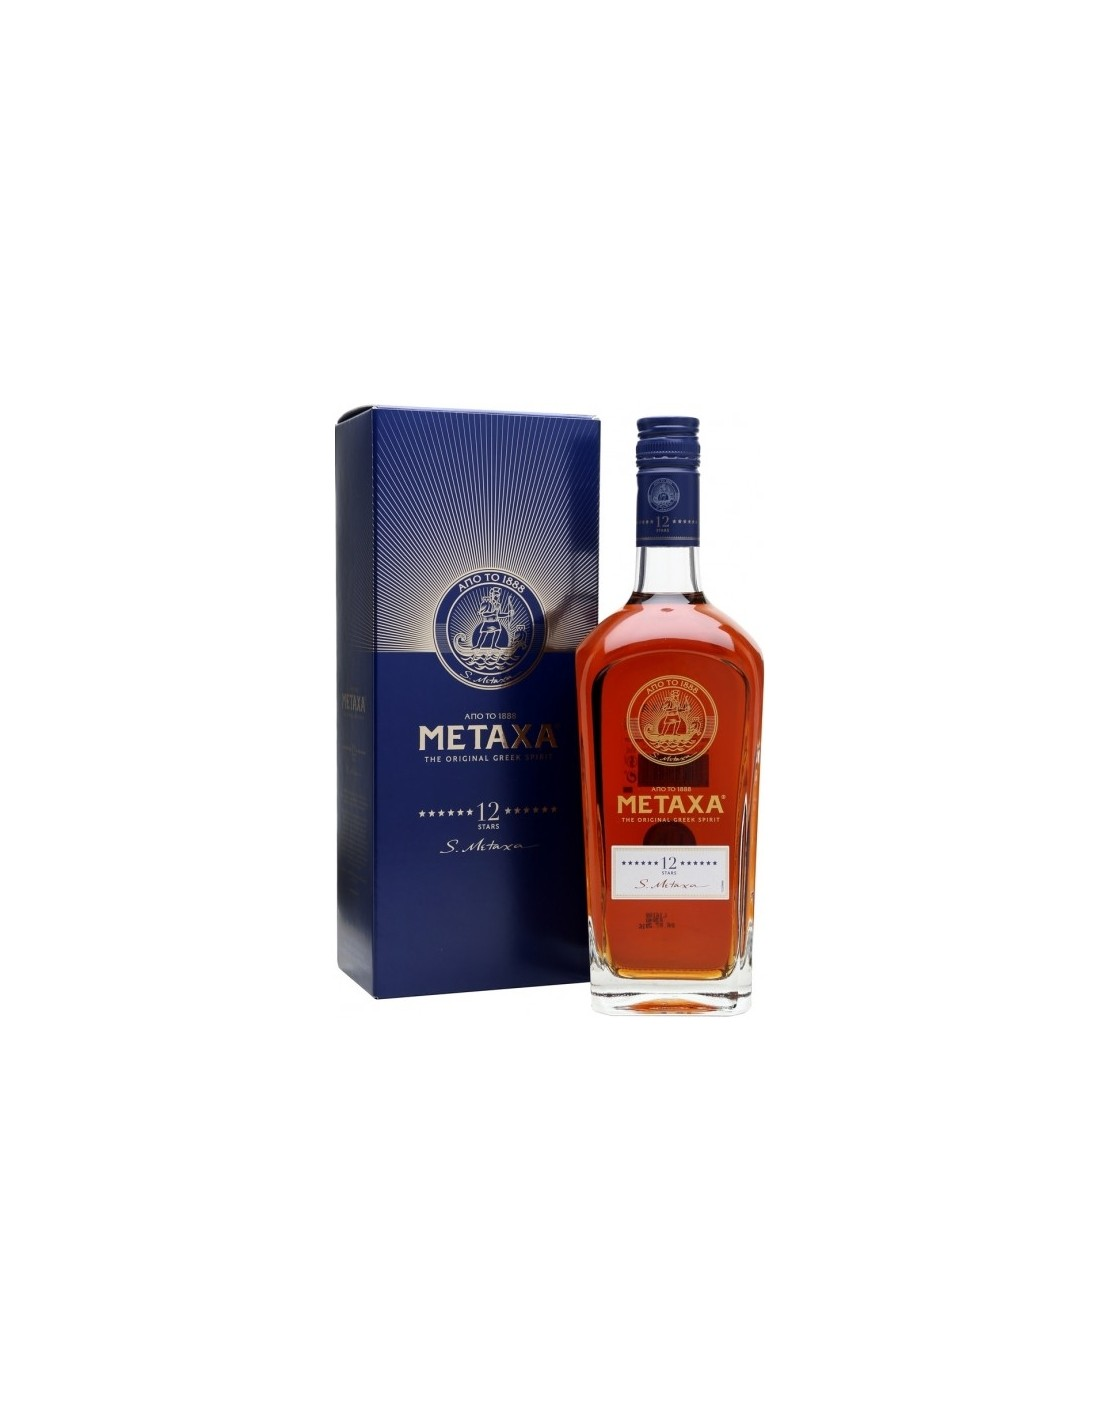 Coniac Brandy Metaxa 12*, 40% alc., 0.7L, Grecia